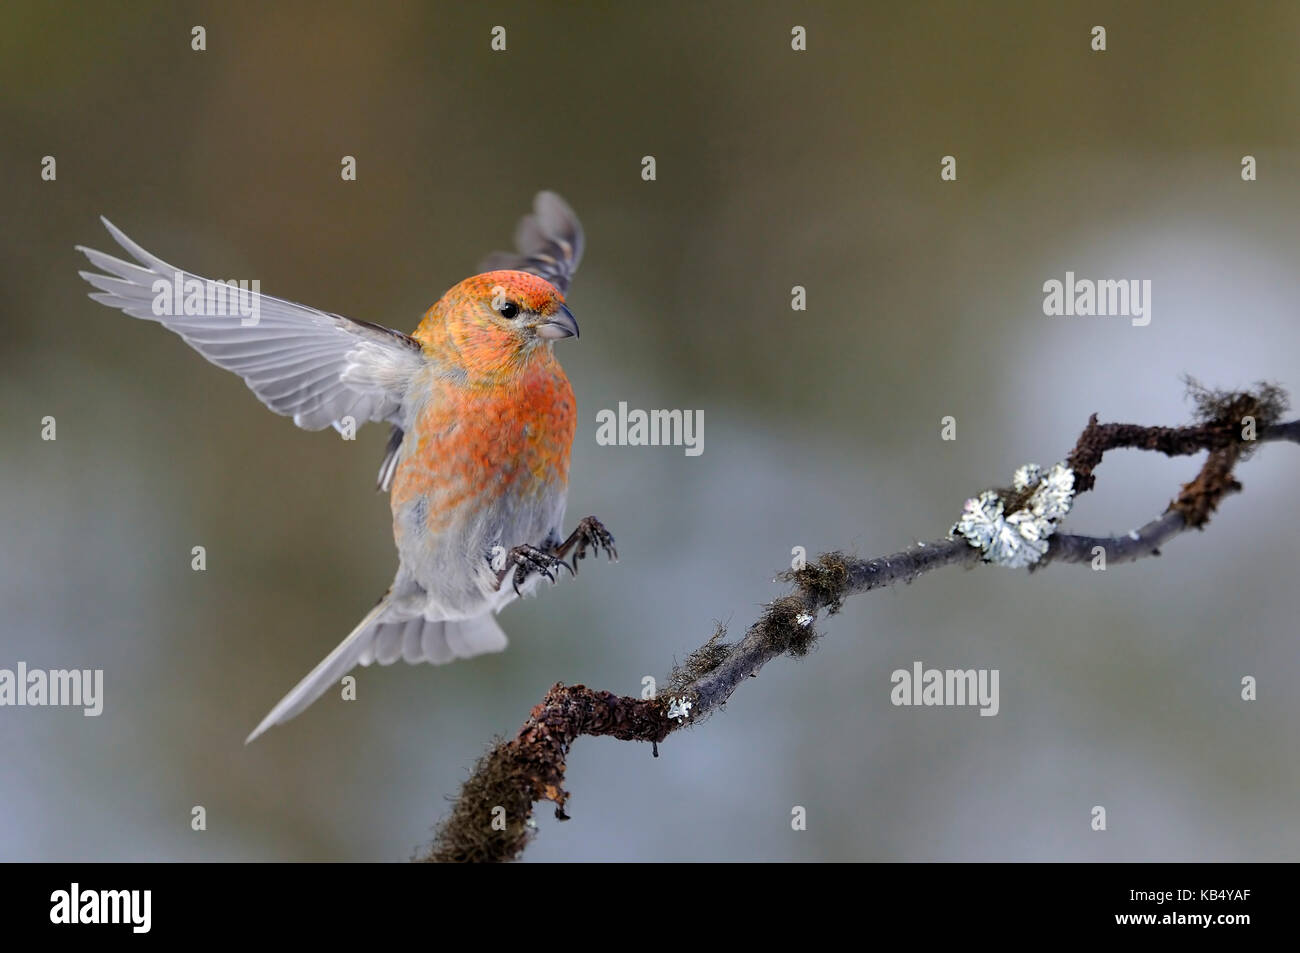 A male Pine Grosbeak (Pinicola enucleator) is just landing on a branch with feet ready to land, Finland, Lapland, - Stock Image